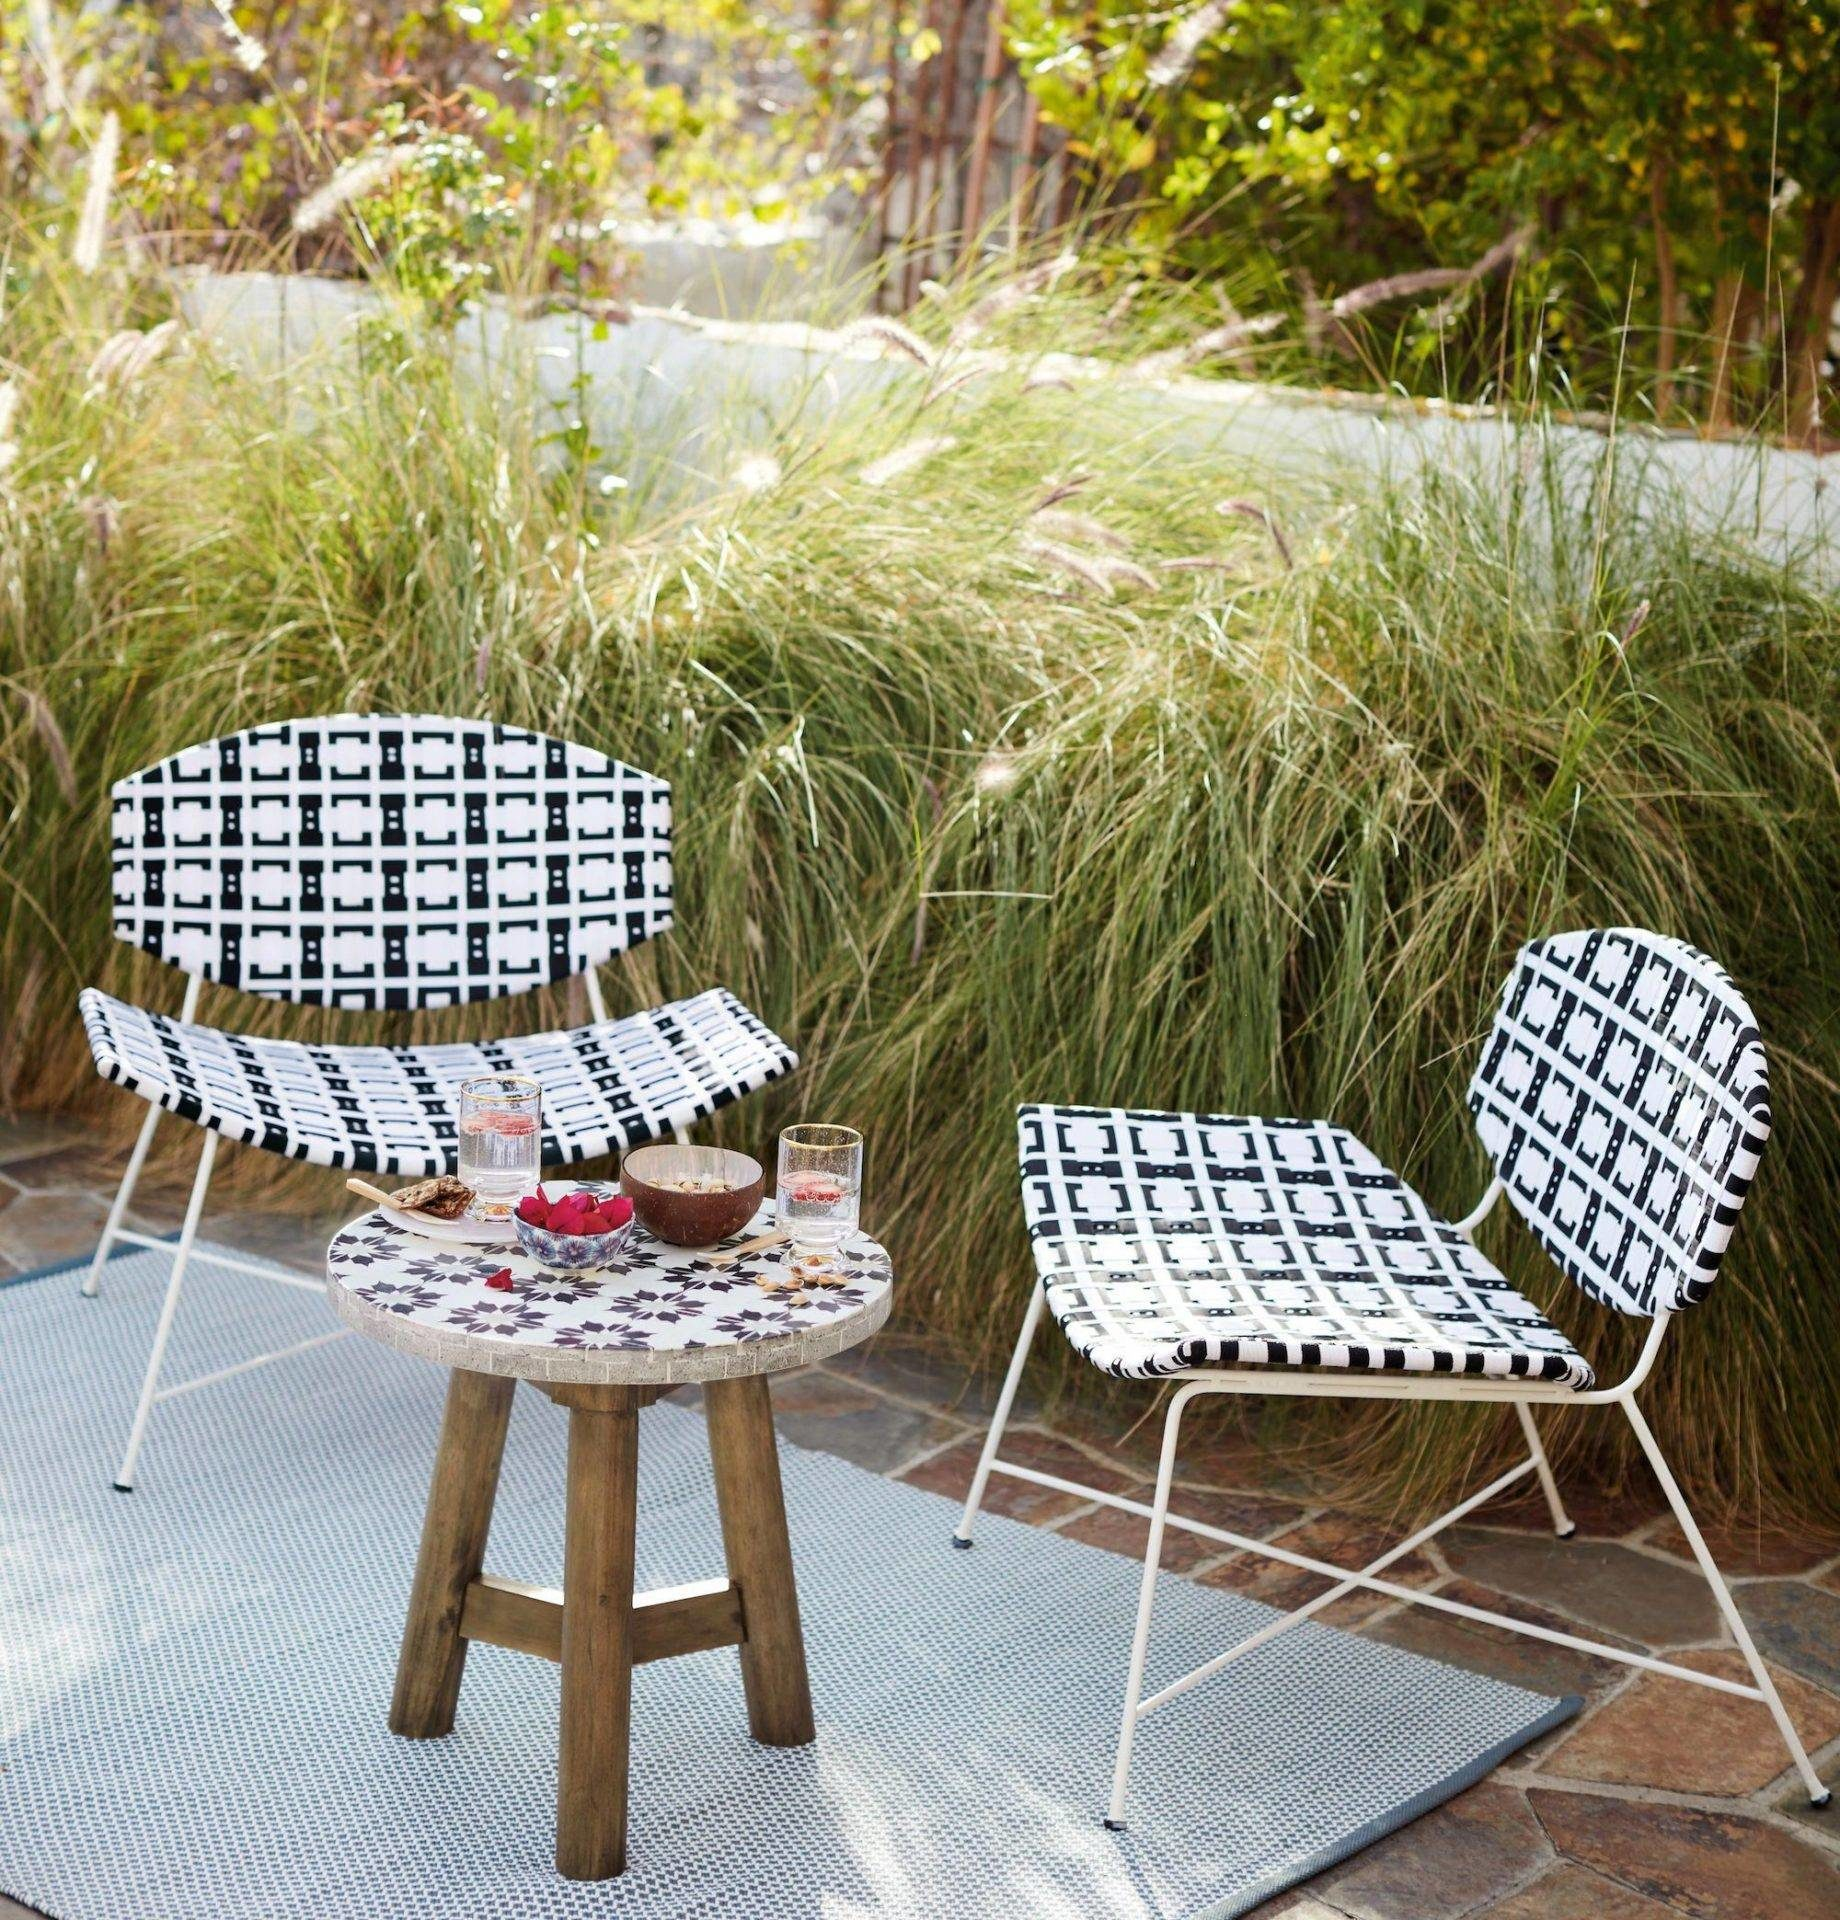 Decorative Pattern Chairs Statement Chair Anthropologie Patio Seating Black and White Bistro Set